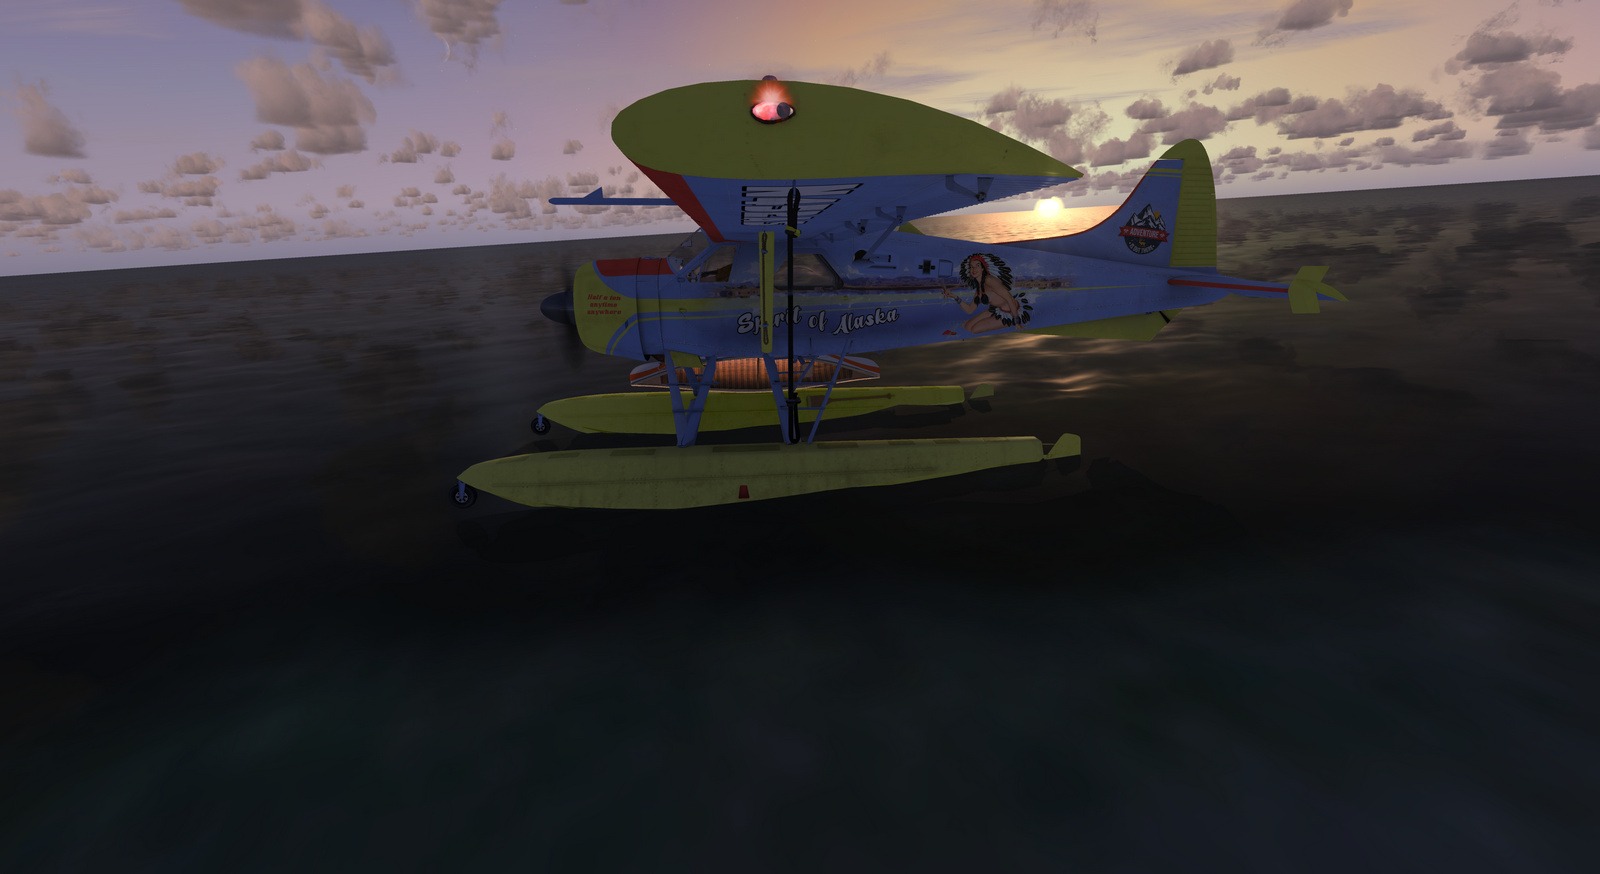 DHC-2 Beaver, Spirit of Alaska, Floats version, Screenshot 19/19